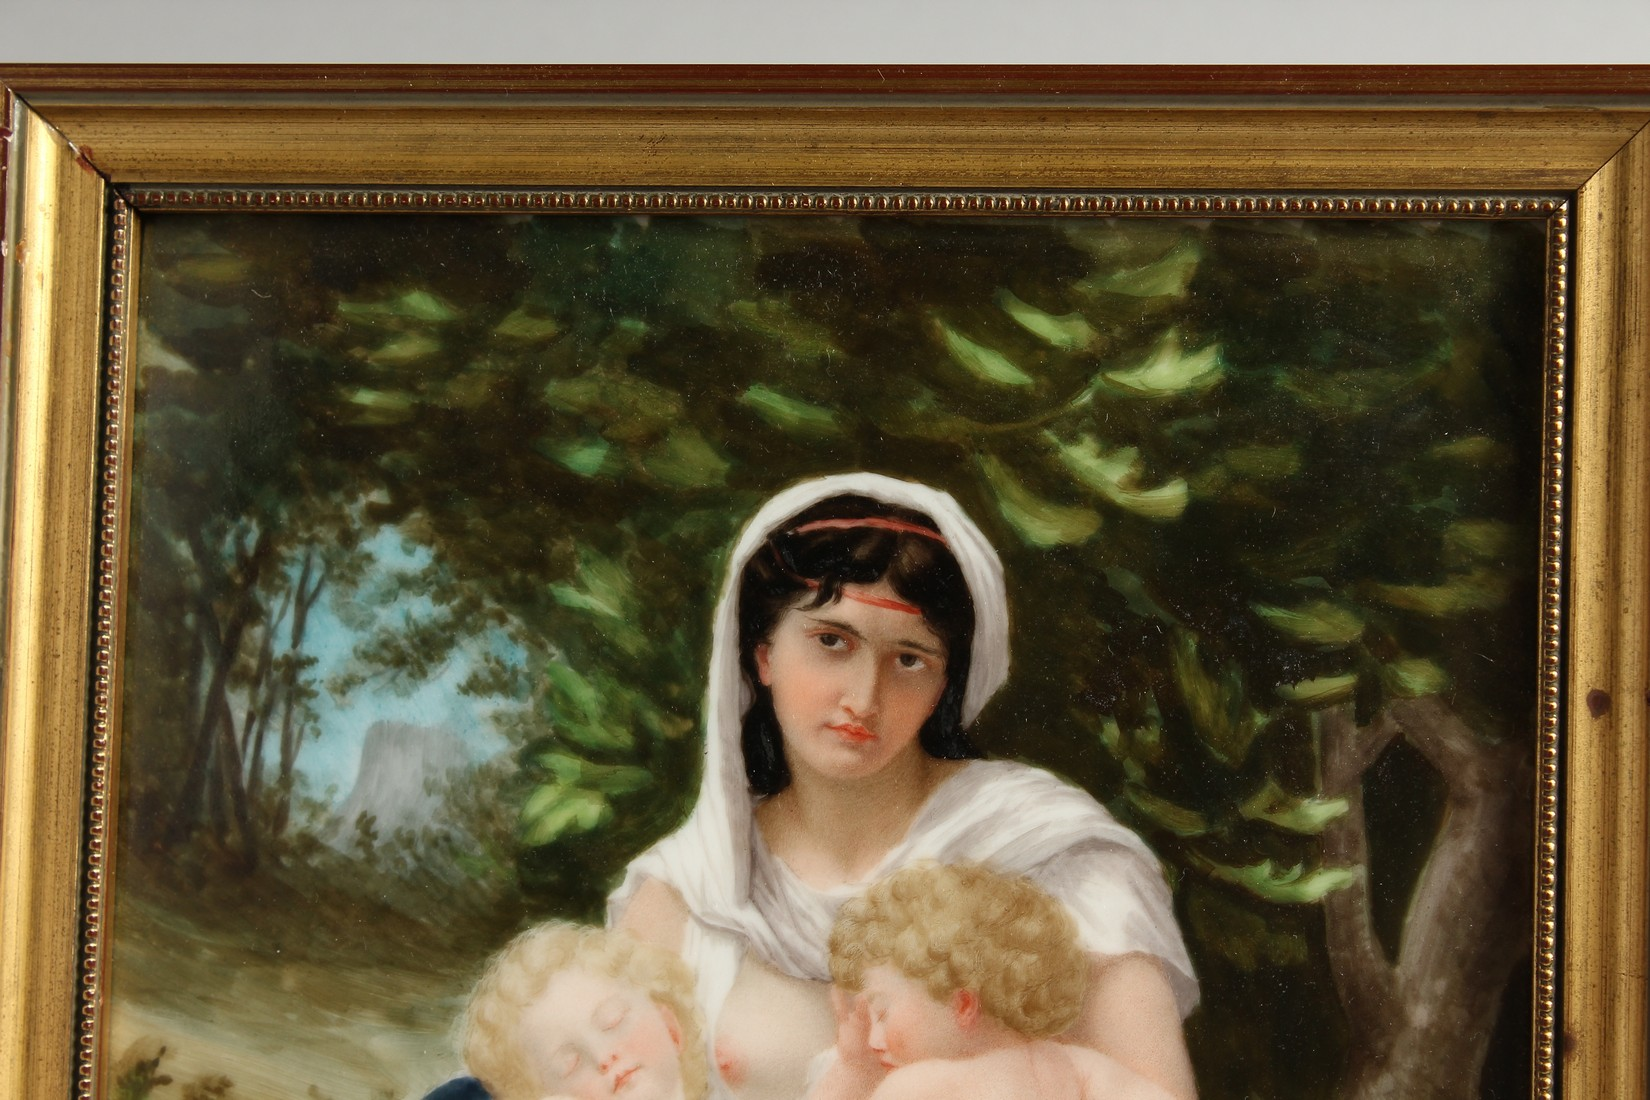 A VERY GOOD GERMAN PORCELAIN PLAQUE, Madonna and child 11.25 x 7.5ins - Image 3 of 7